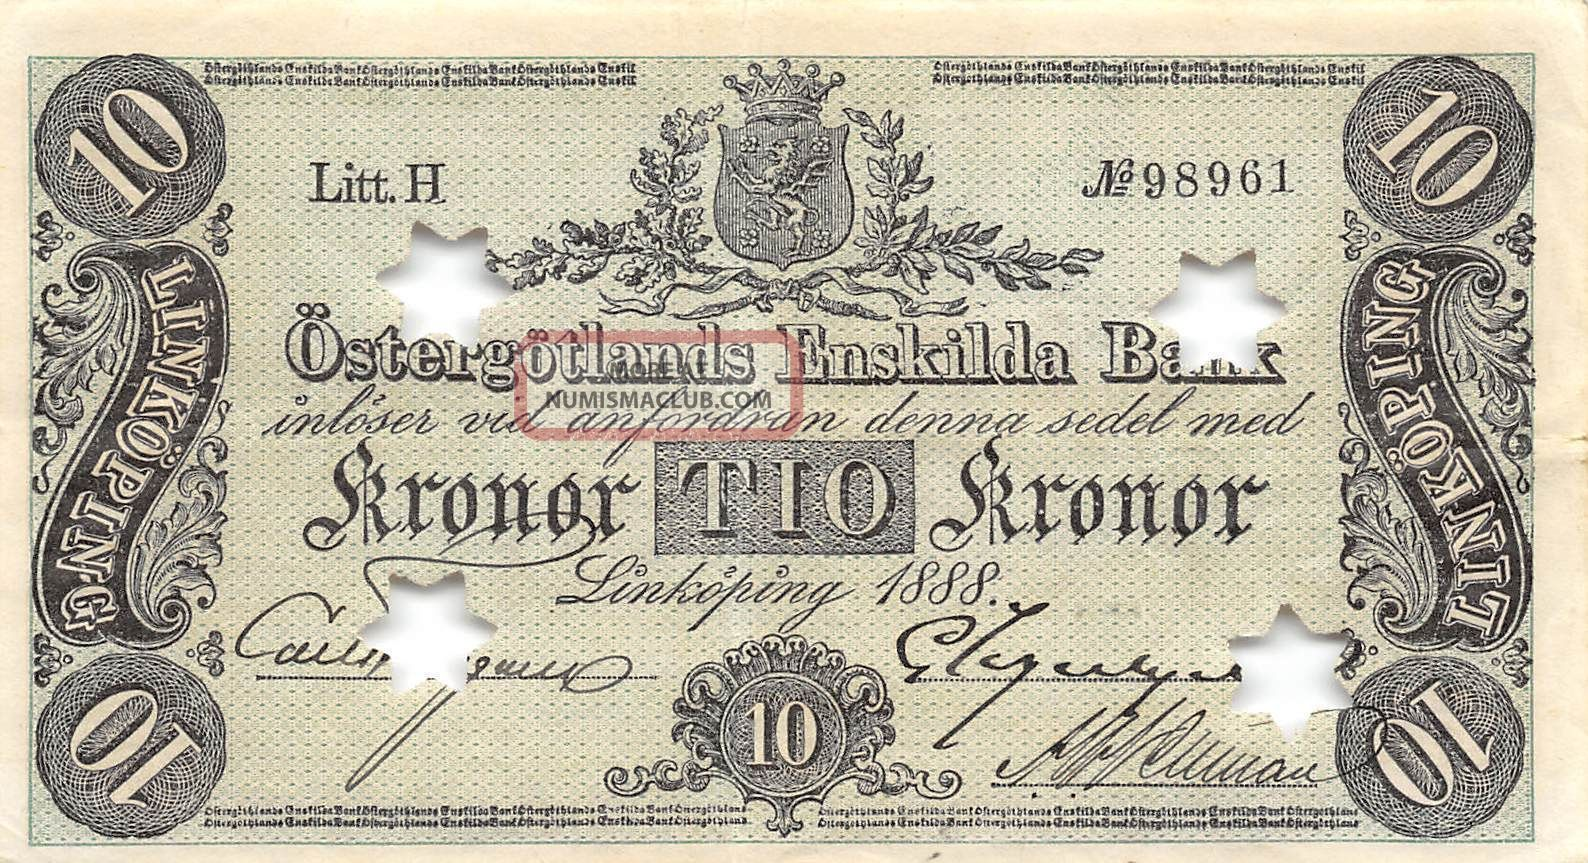 Sweden 10 Kronor Ostergotland 1888 S 733b Litt.  H Rare Circulated Banknote Europe photo